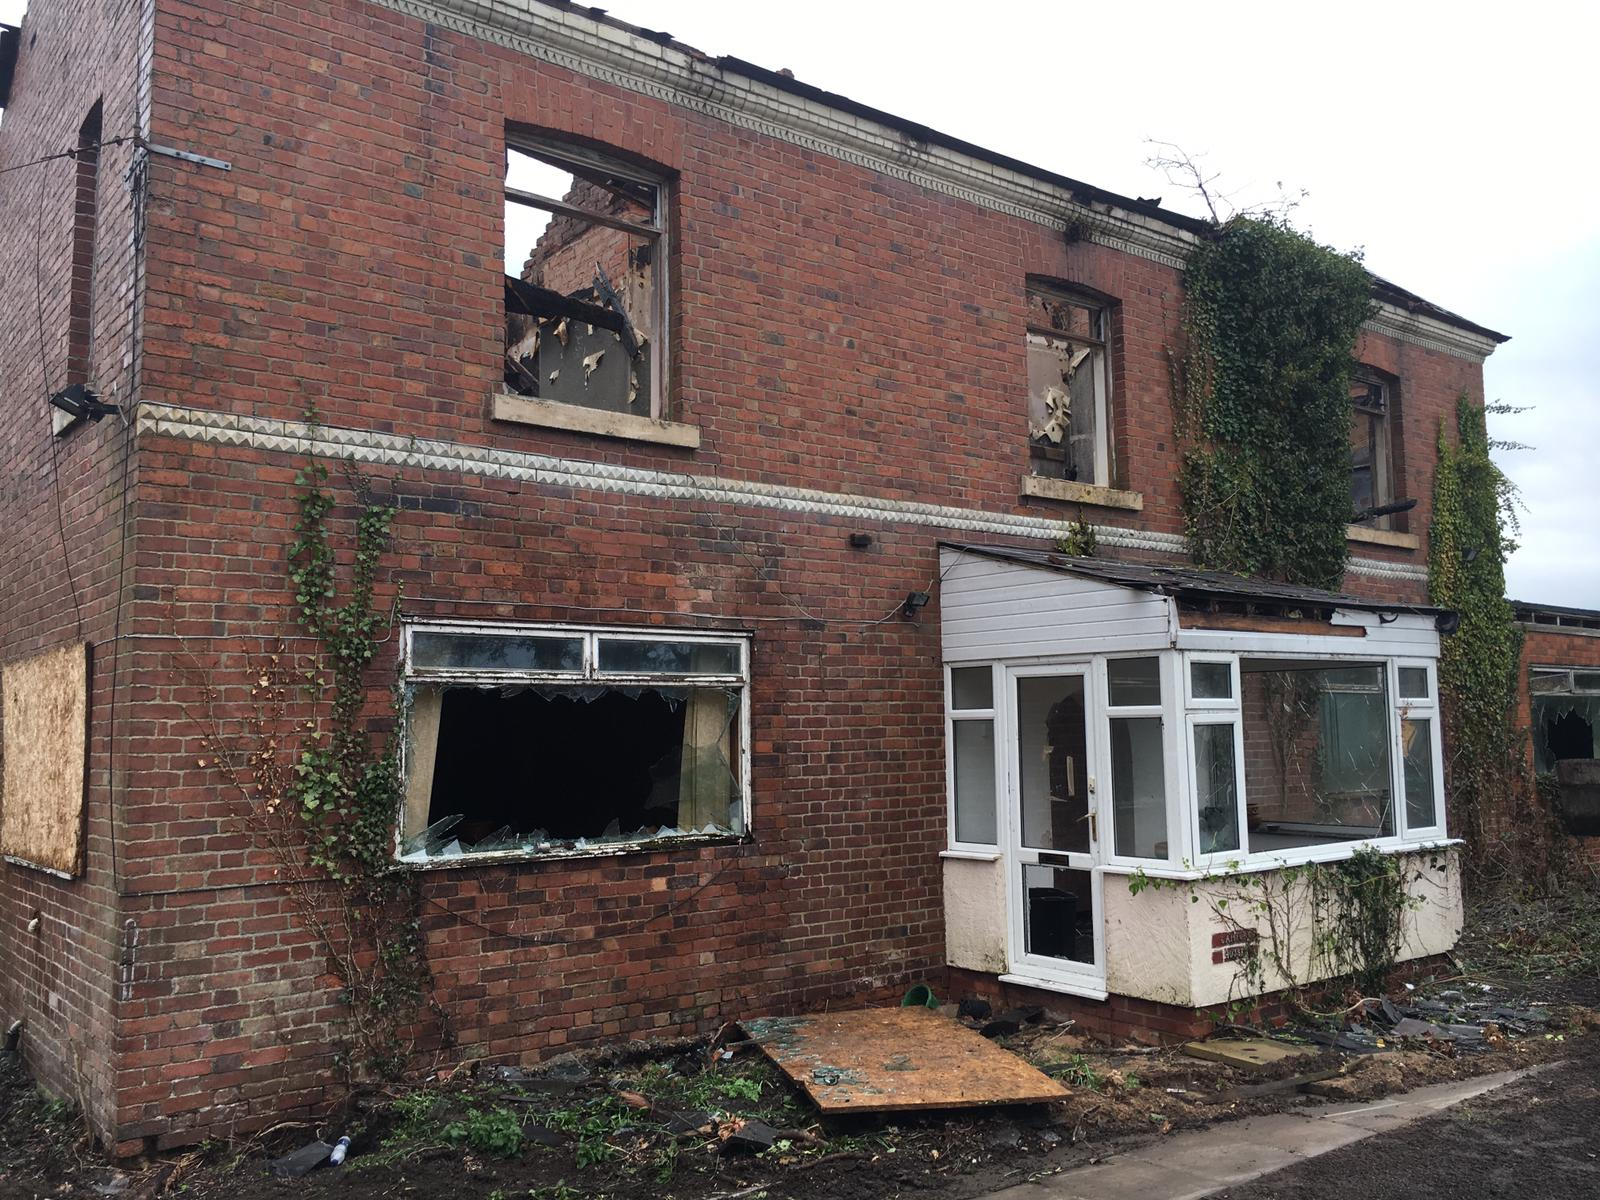 The damage at derelict building on Gamford Lane, Rossett. Picture: Scott Murphy